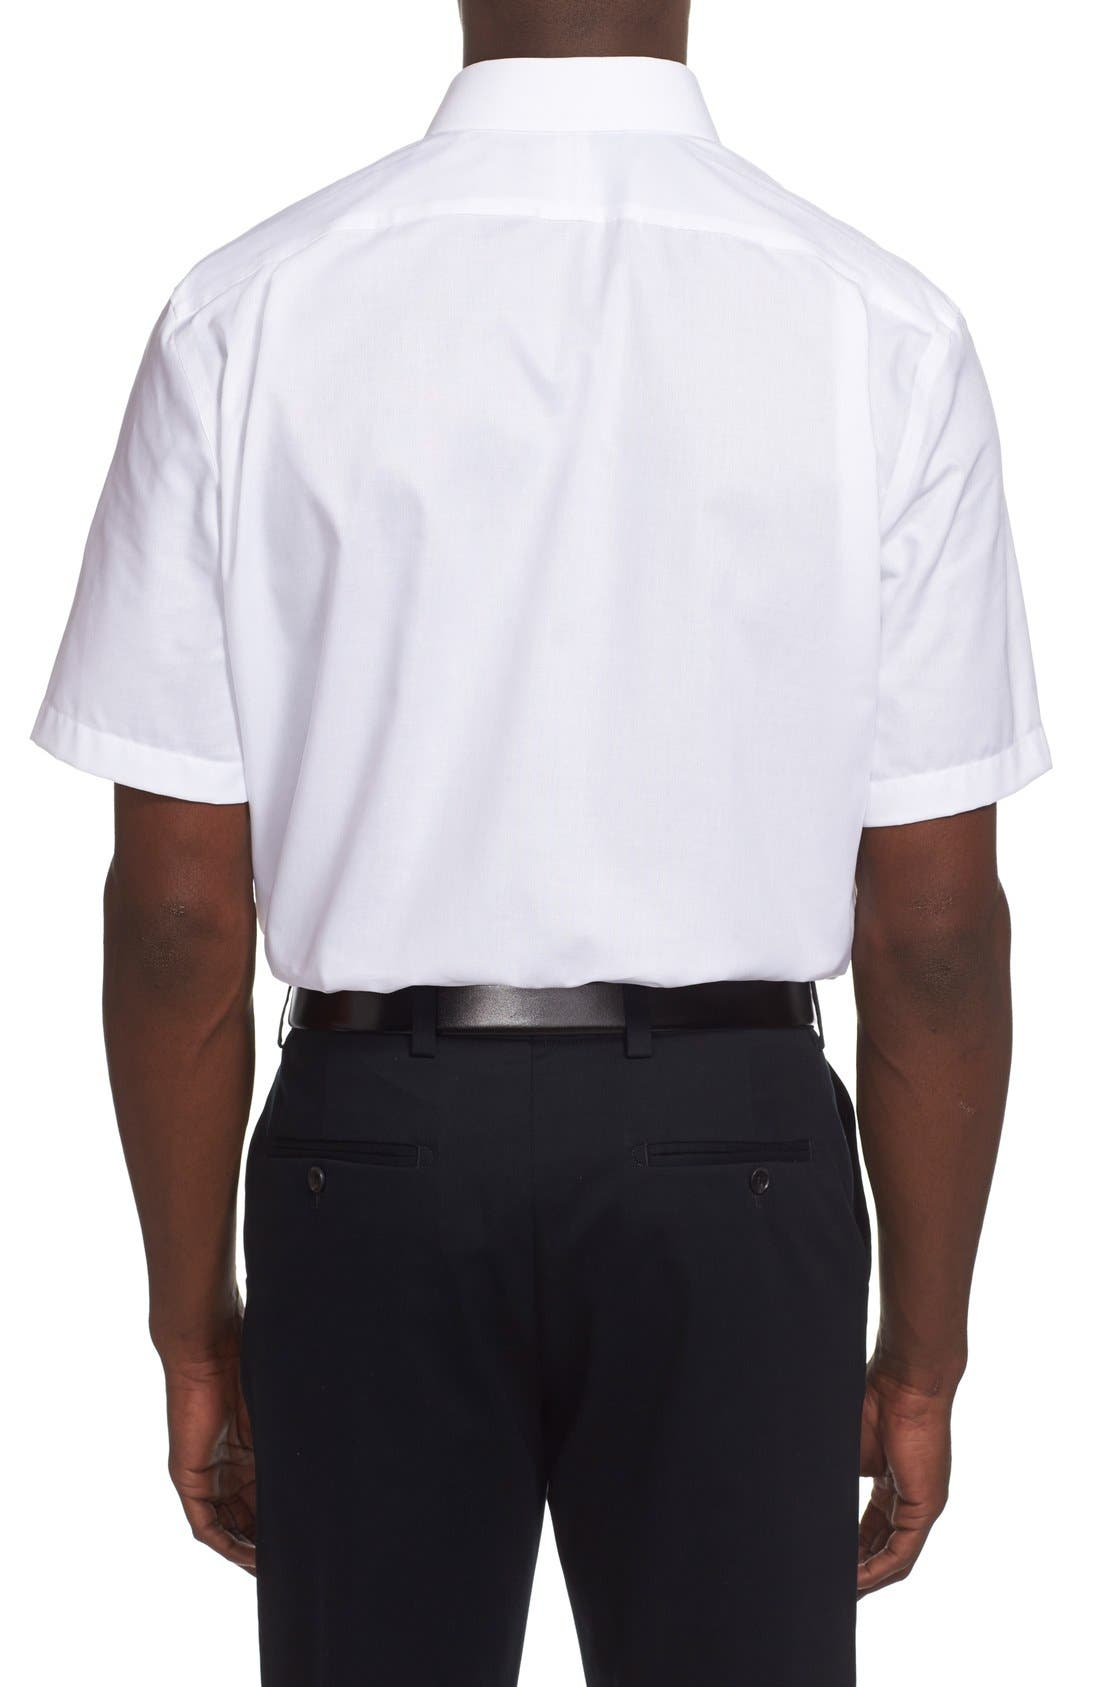 Alternate Image 3  - Nordstrom Men's Shop Traditional Fit Non-Iron Short Sleeve Dress Shirt